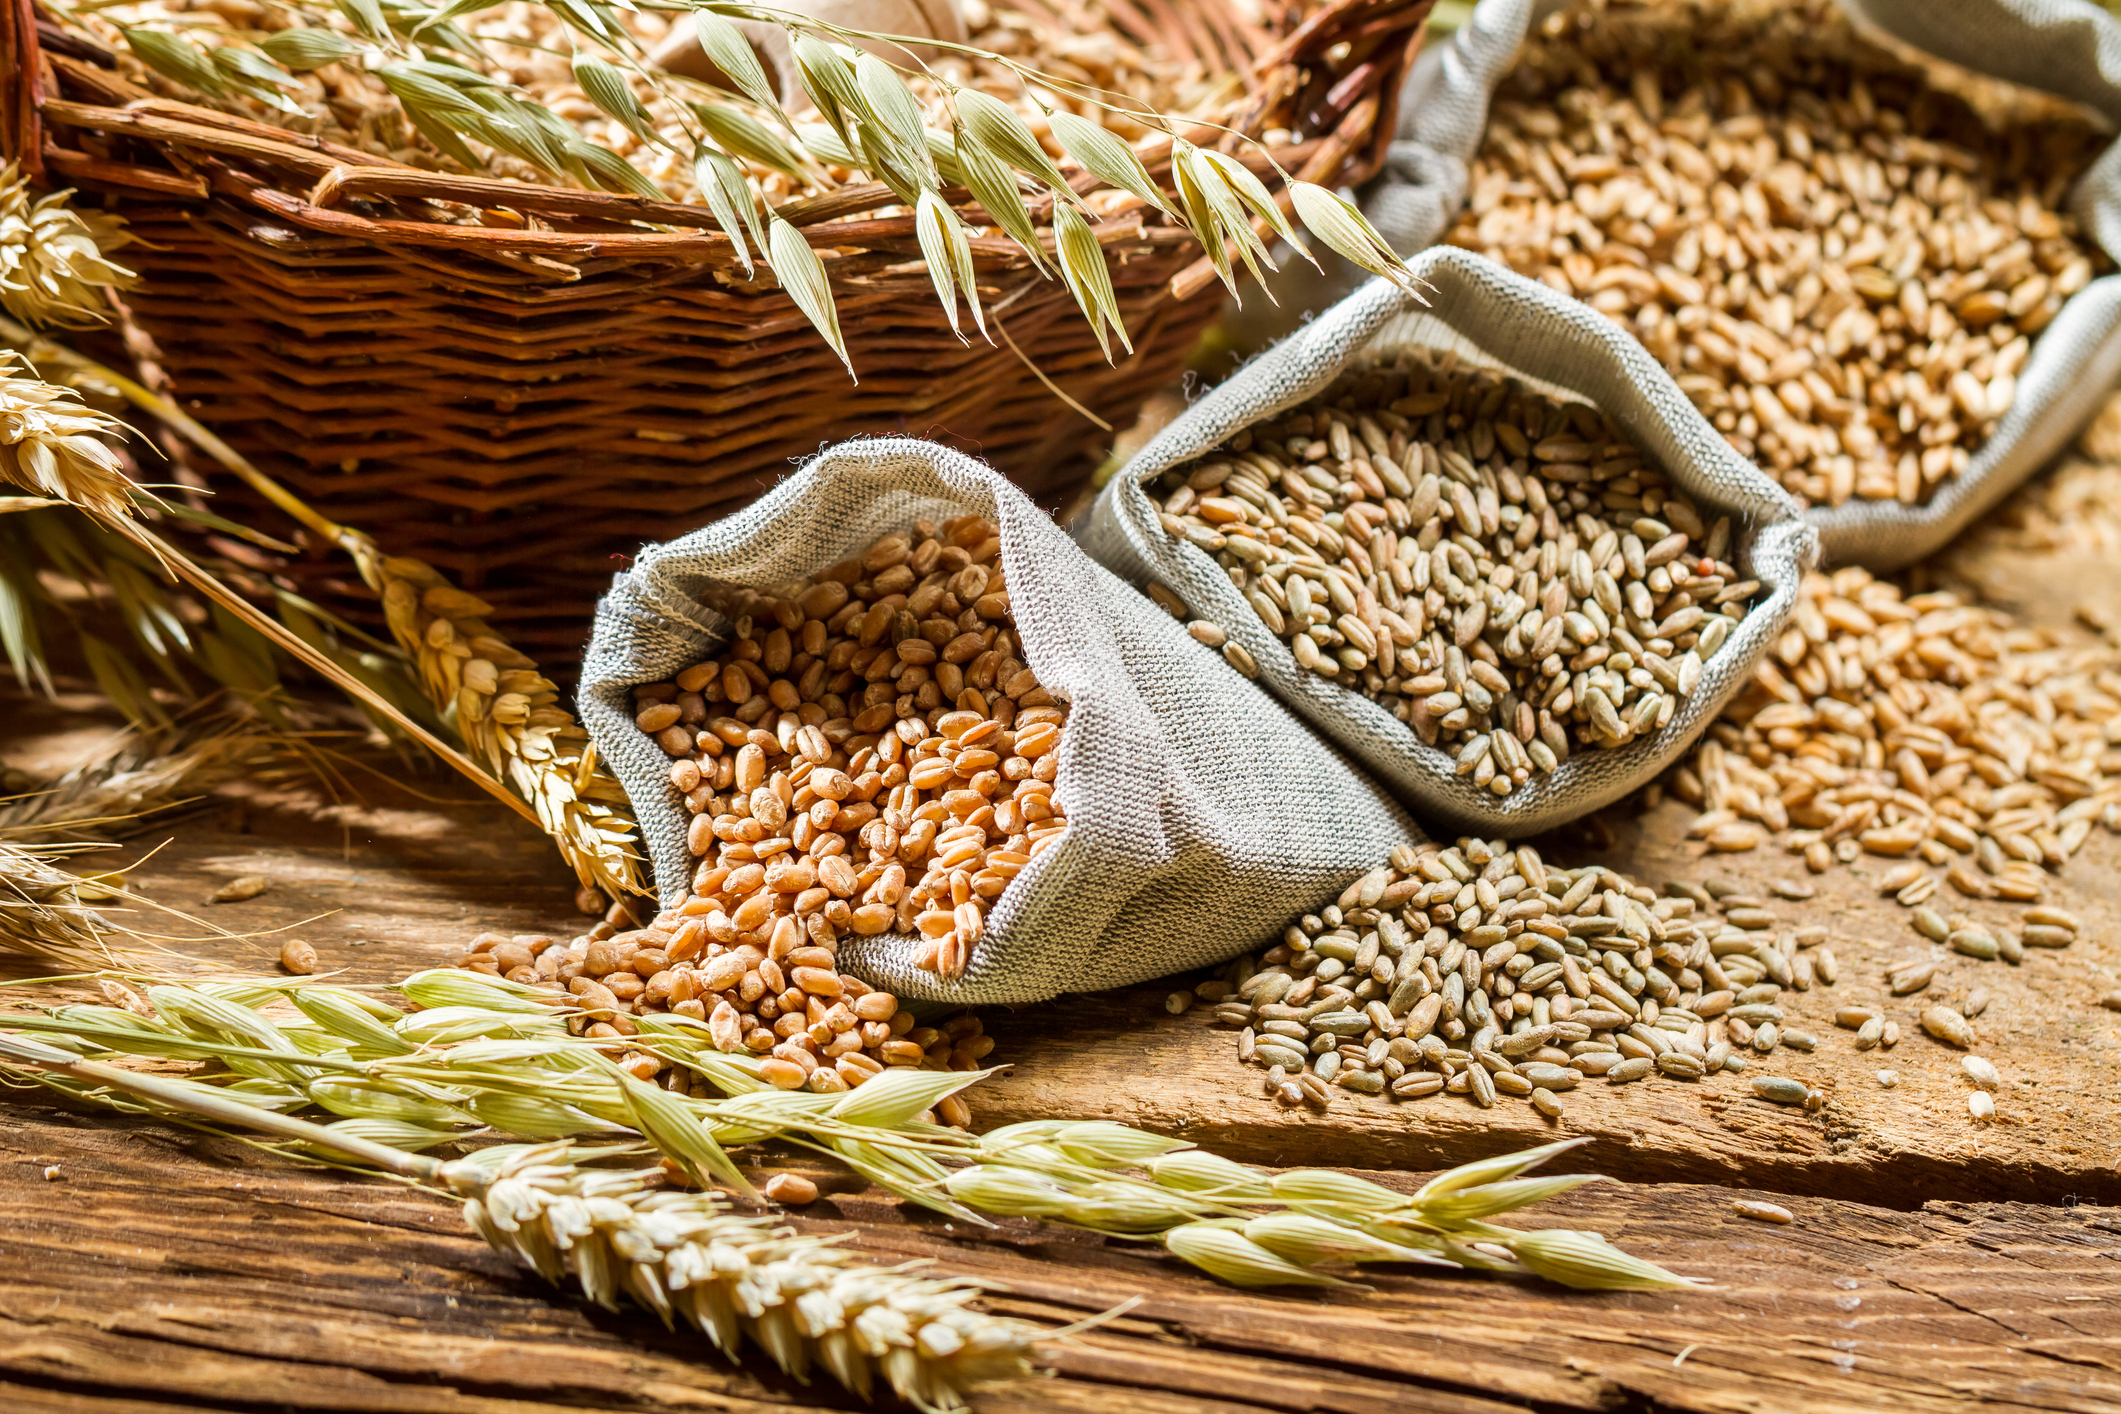 Whole Grains 101: What to Buy